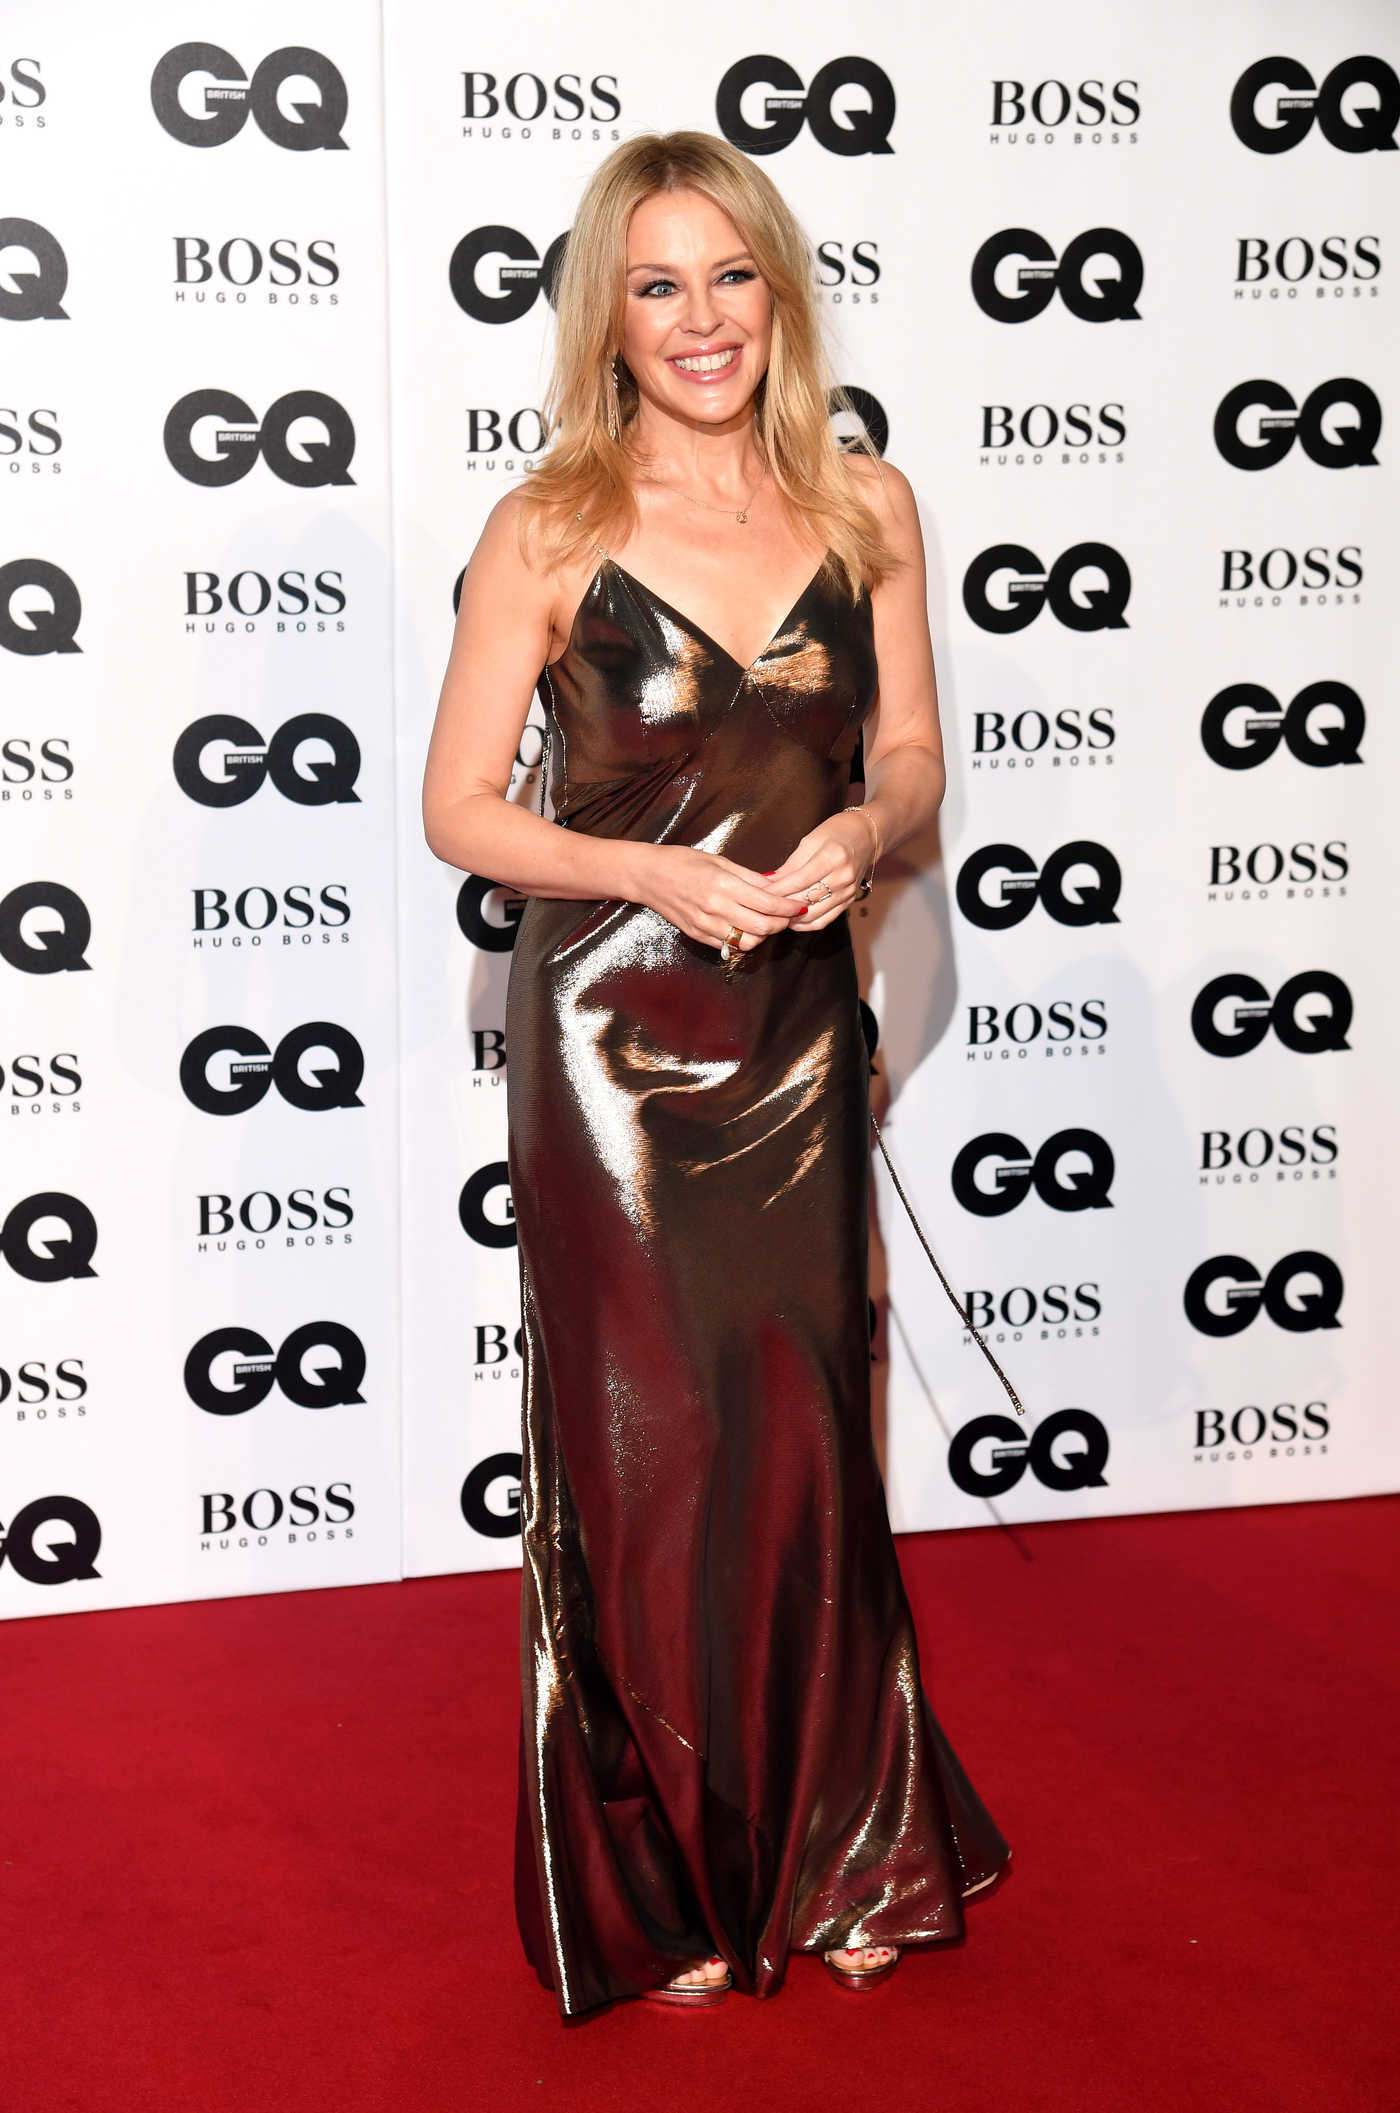 Kylie Minogue at 2018 GQ Men of the Year Awards in London 09/05/2018